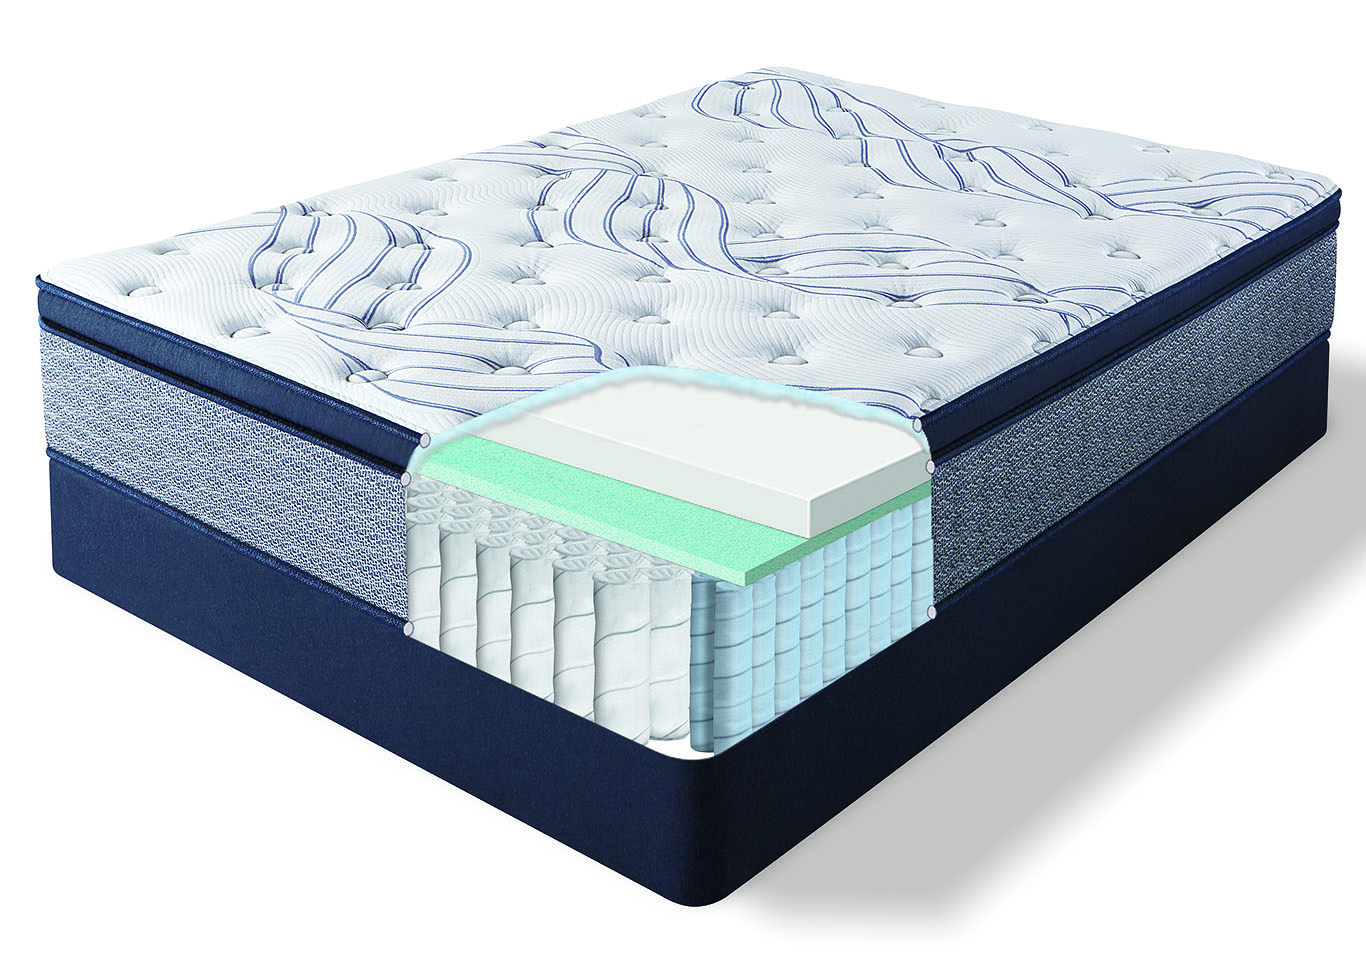 Kleinmon II Pillow Top Firm Twin Mattress,Serta